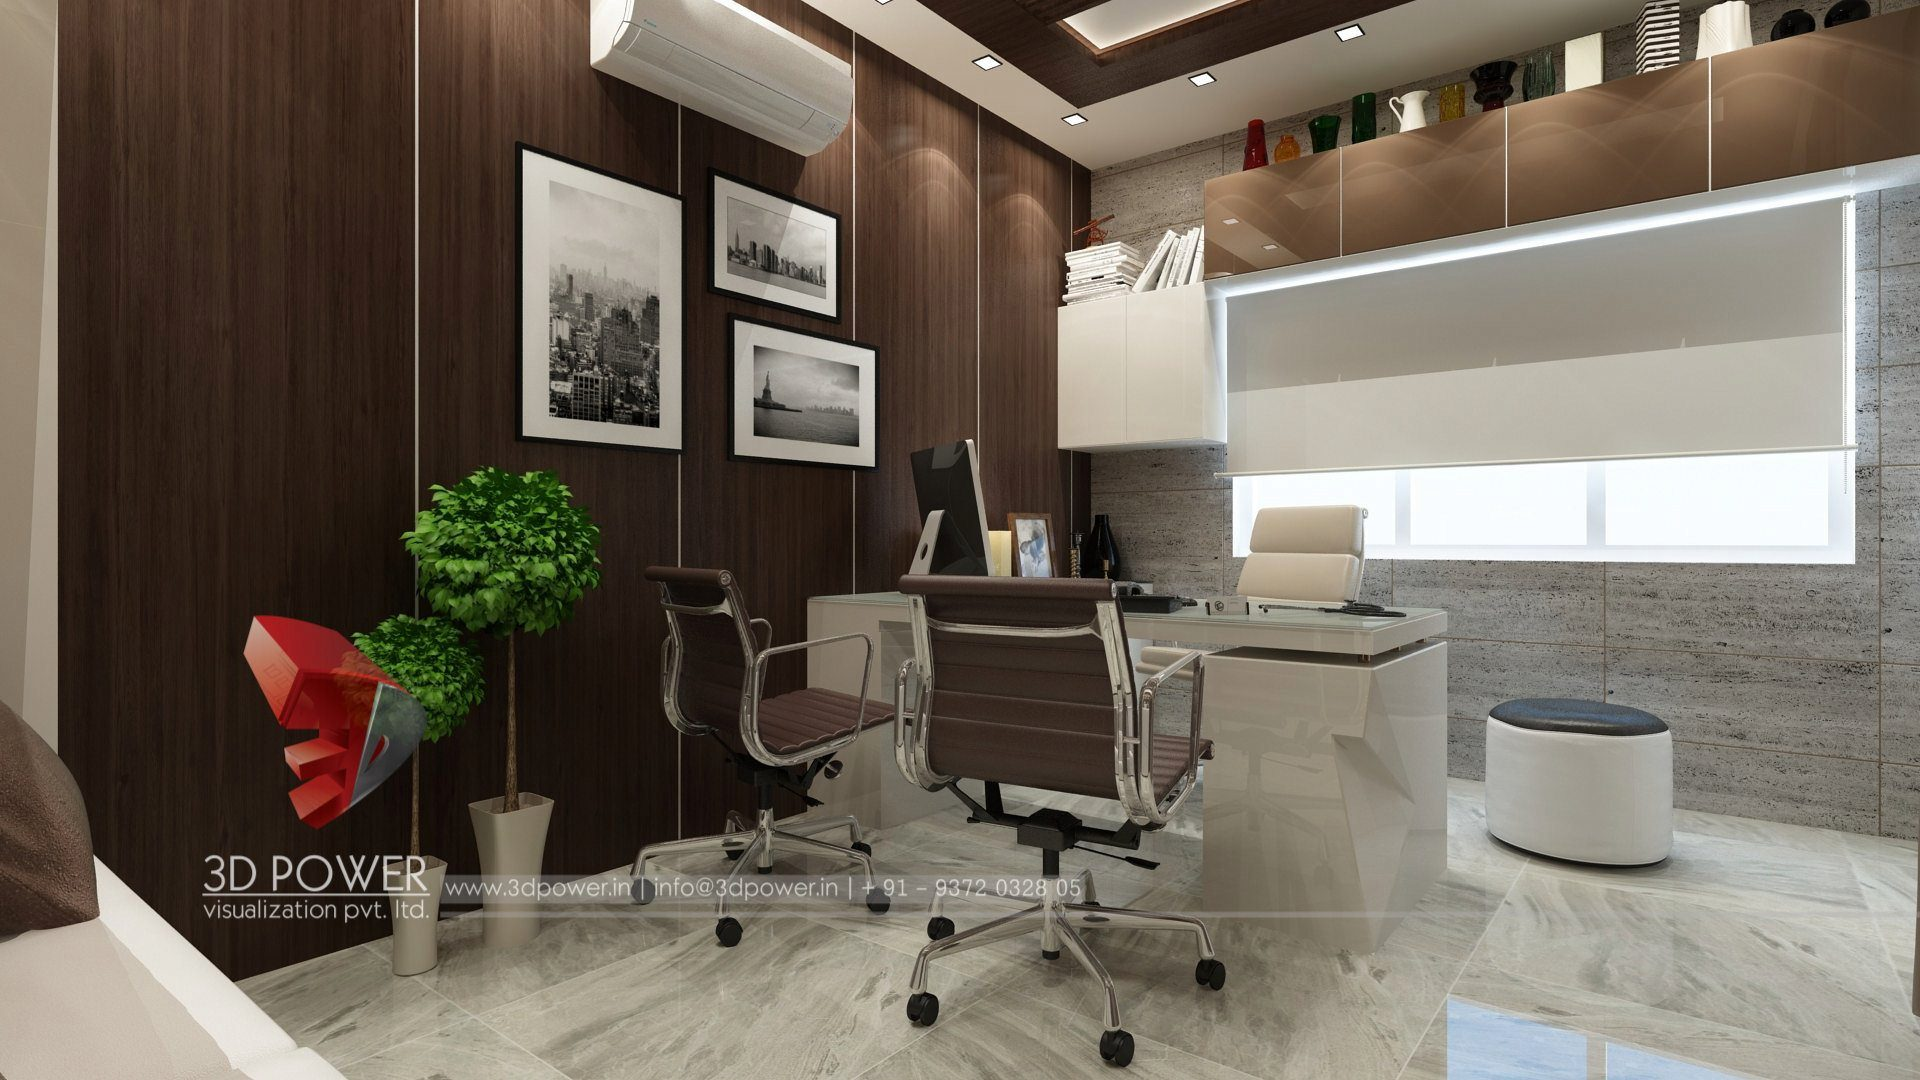 Interiors Ideas 3d Interior Design And Rendering Services Bungalow And Home